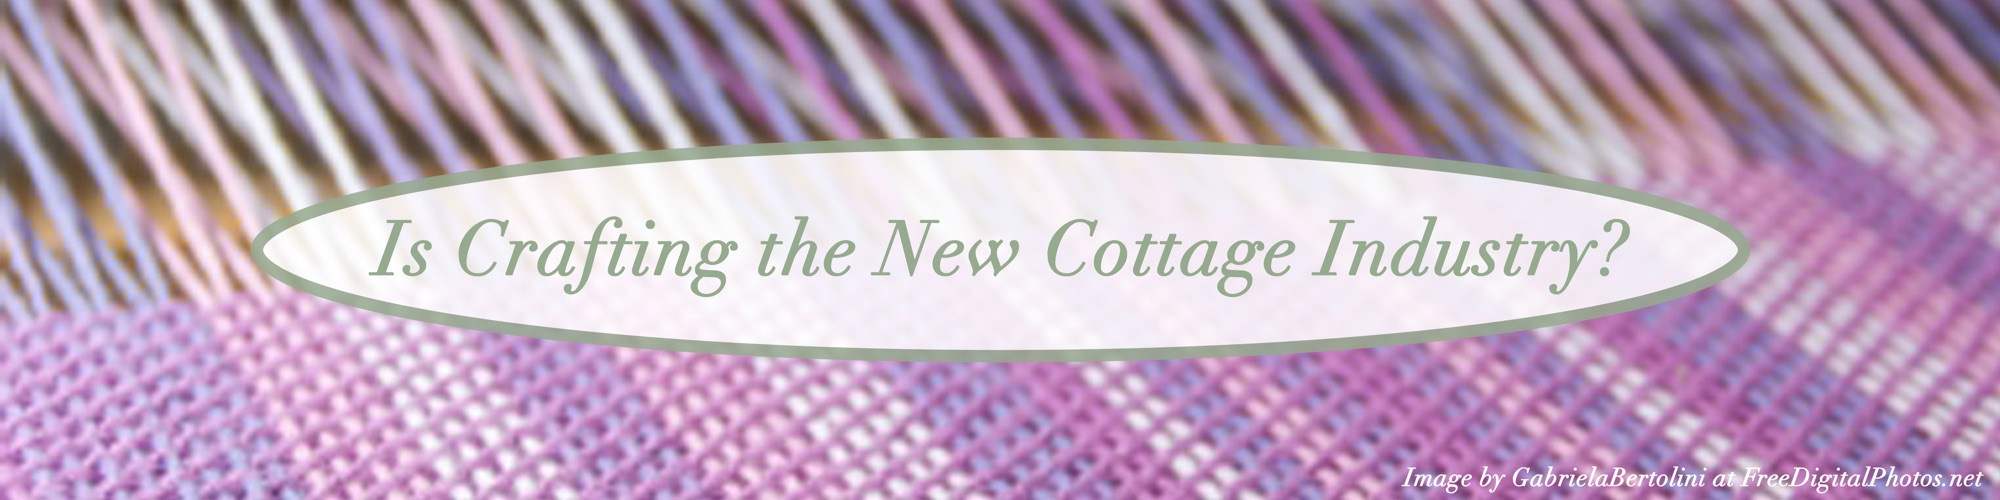 Is-Crafting-the-New-Cottage-Industry-blog-post